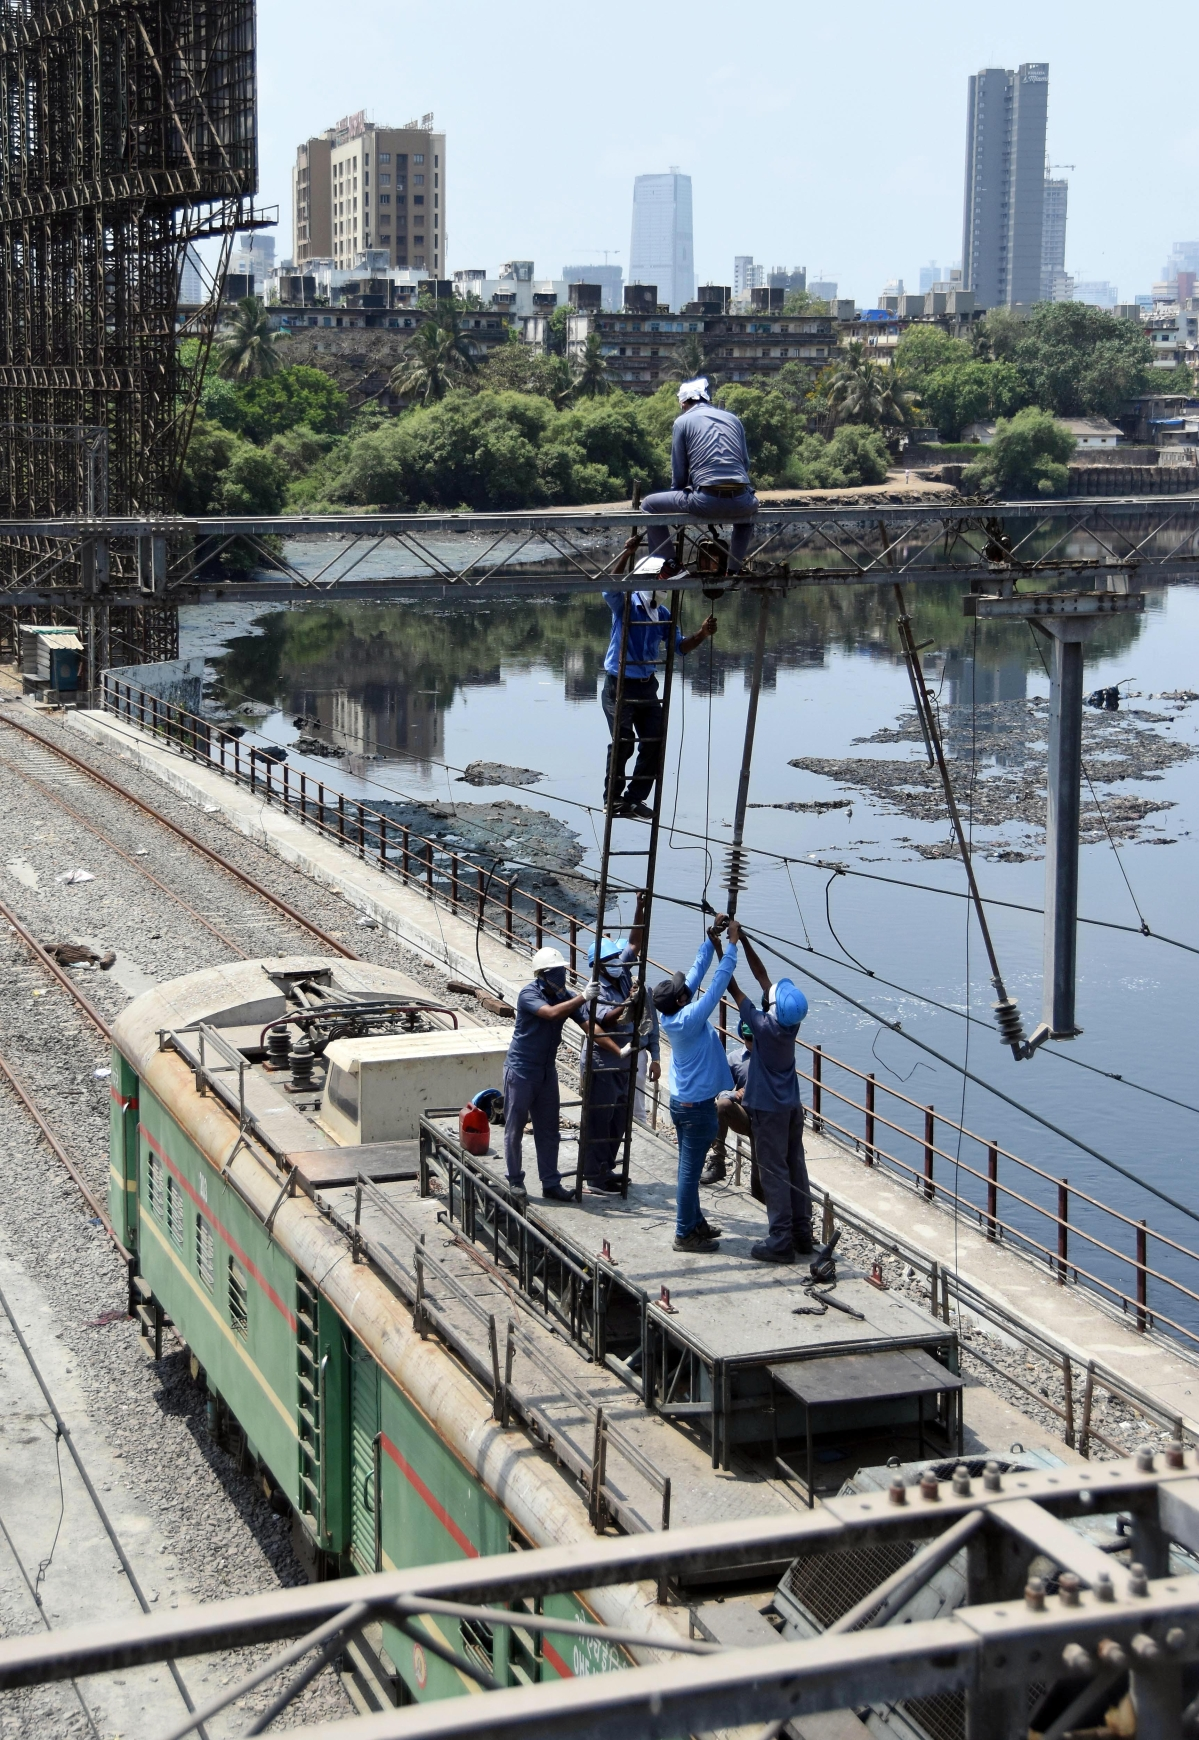 Labourers do the maintenance work on Western Railway lines near Bandra station during the nationwide lockdown, in Mumbai